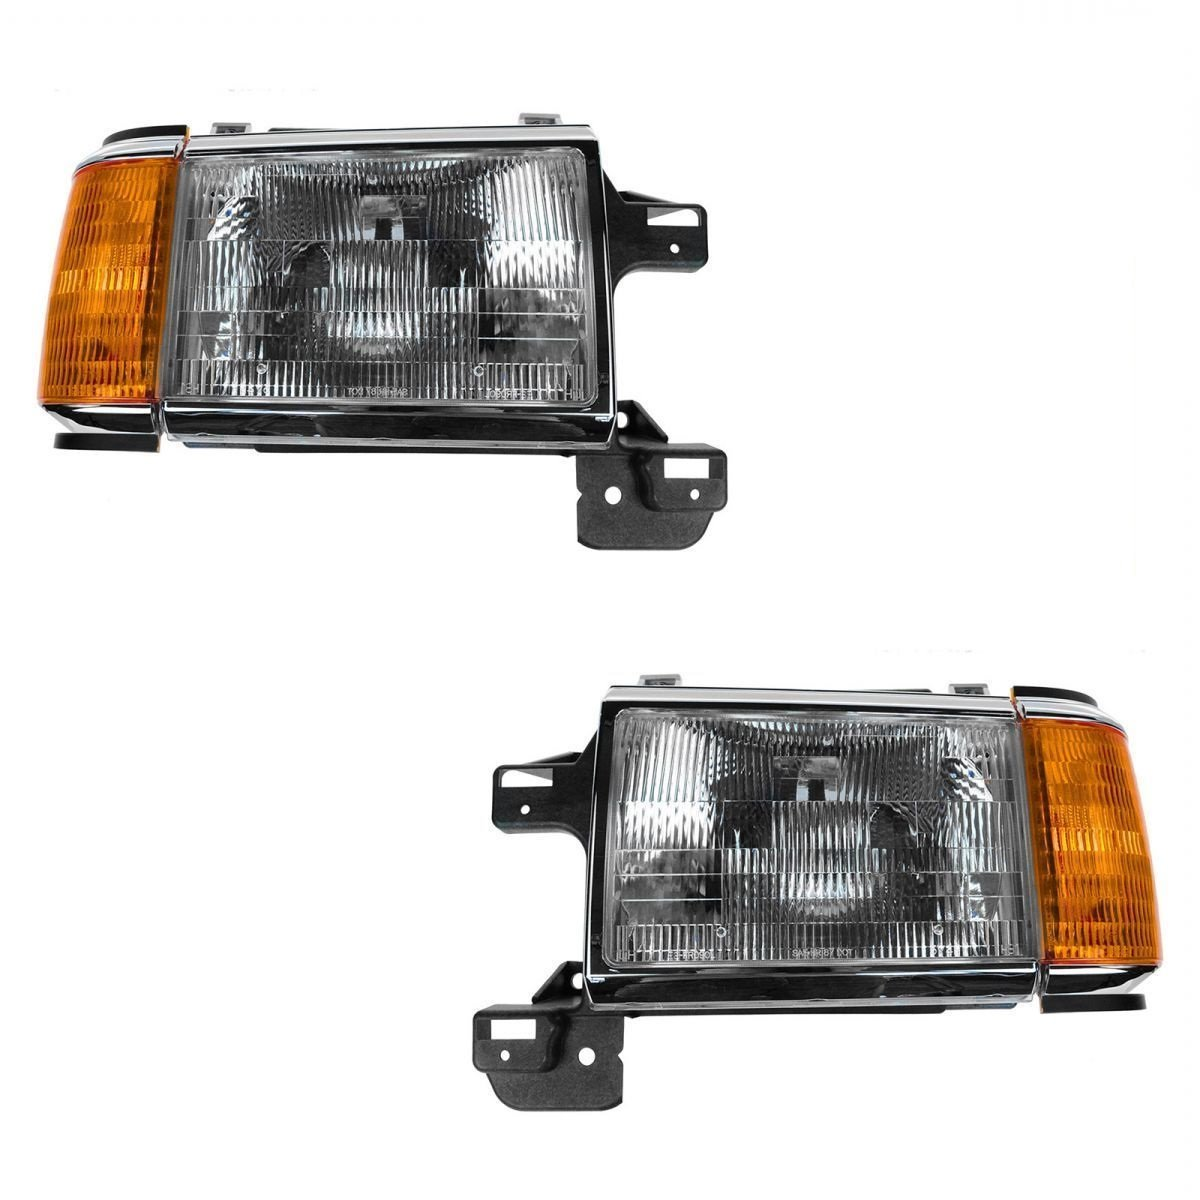 Fleetwood Bounder 1997-1999 RV Motorhome Pair (Left & Right) Replacement Front Headlights & Signal Lights